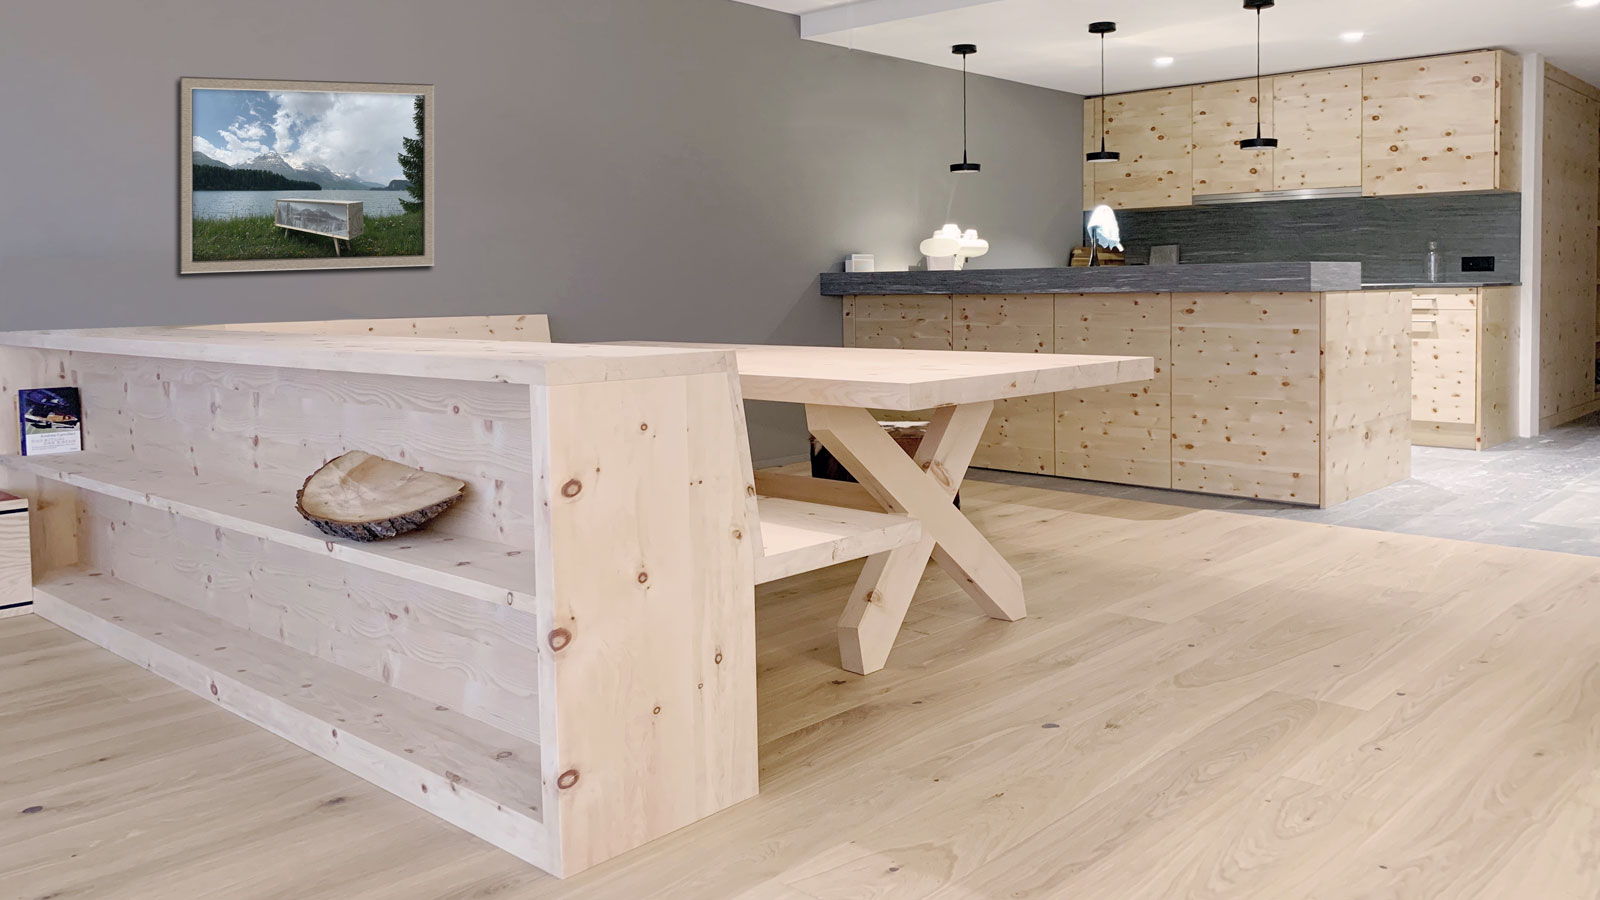 Kitchen made of Swiss stone pine by Holzer & Bott, Zuoz, Switzerland